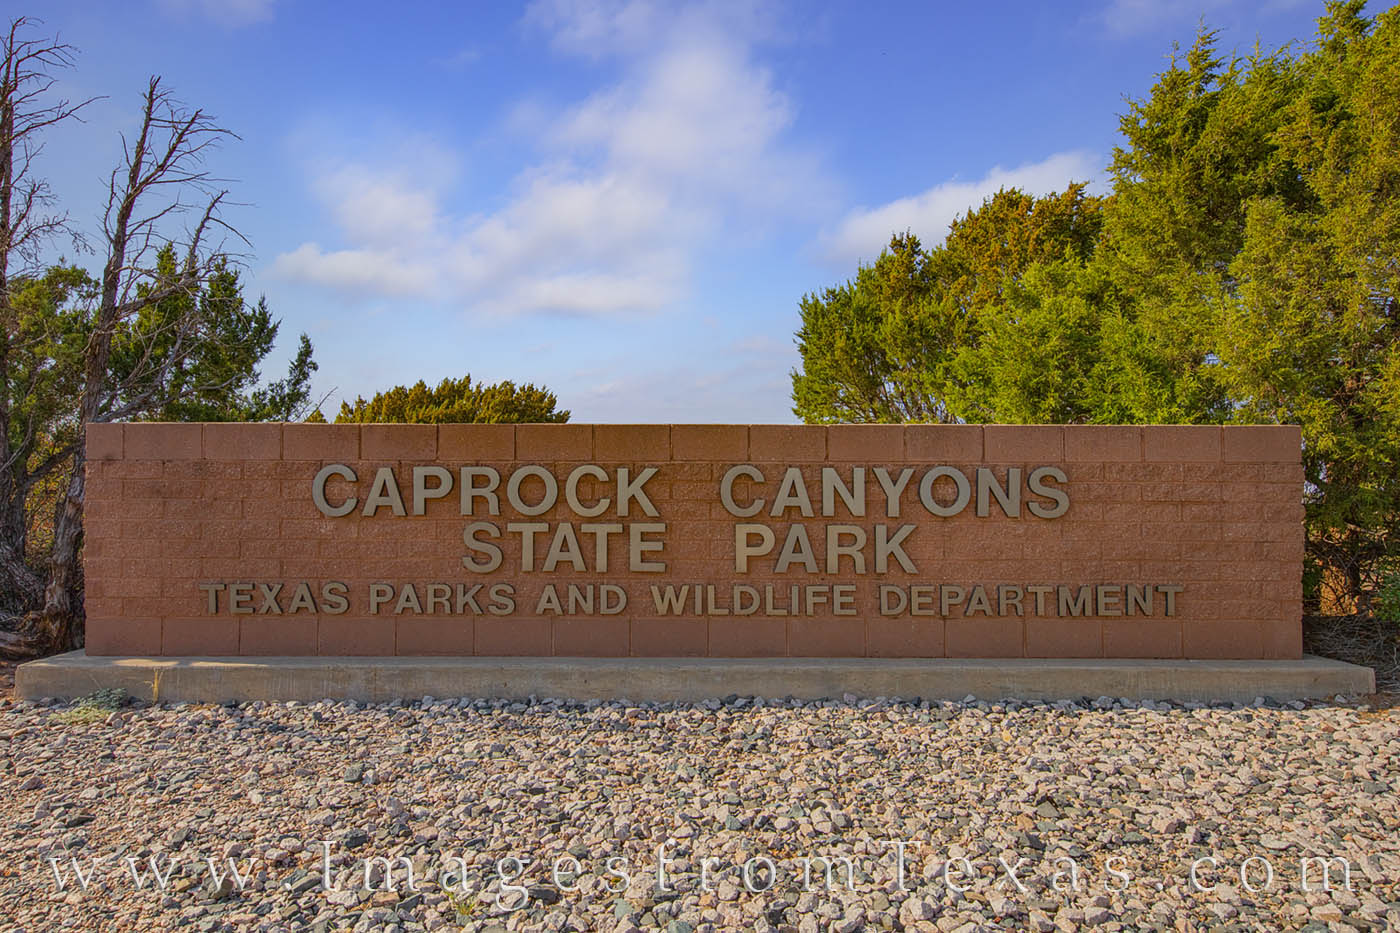 Welcome to Caprock Canyons State Park! This is the sign that greets visitors as they head into this remote west Texas park.